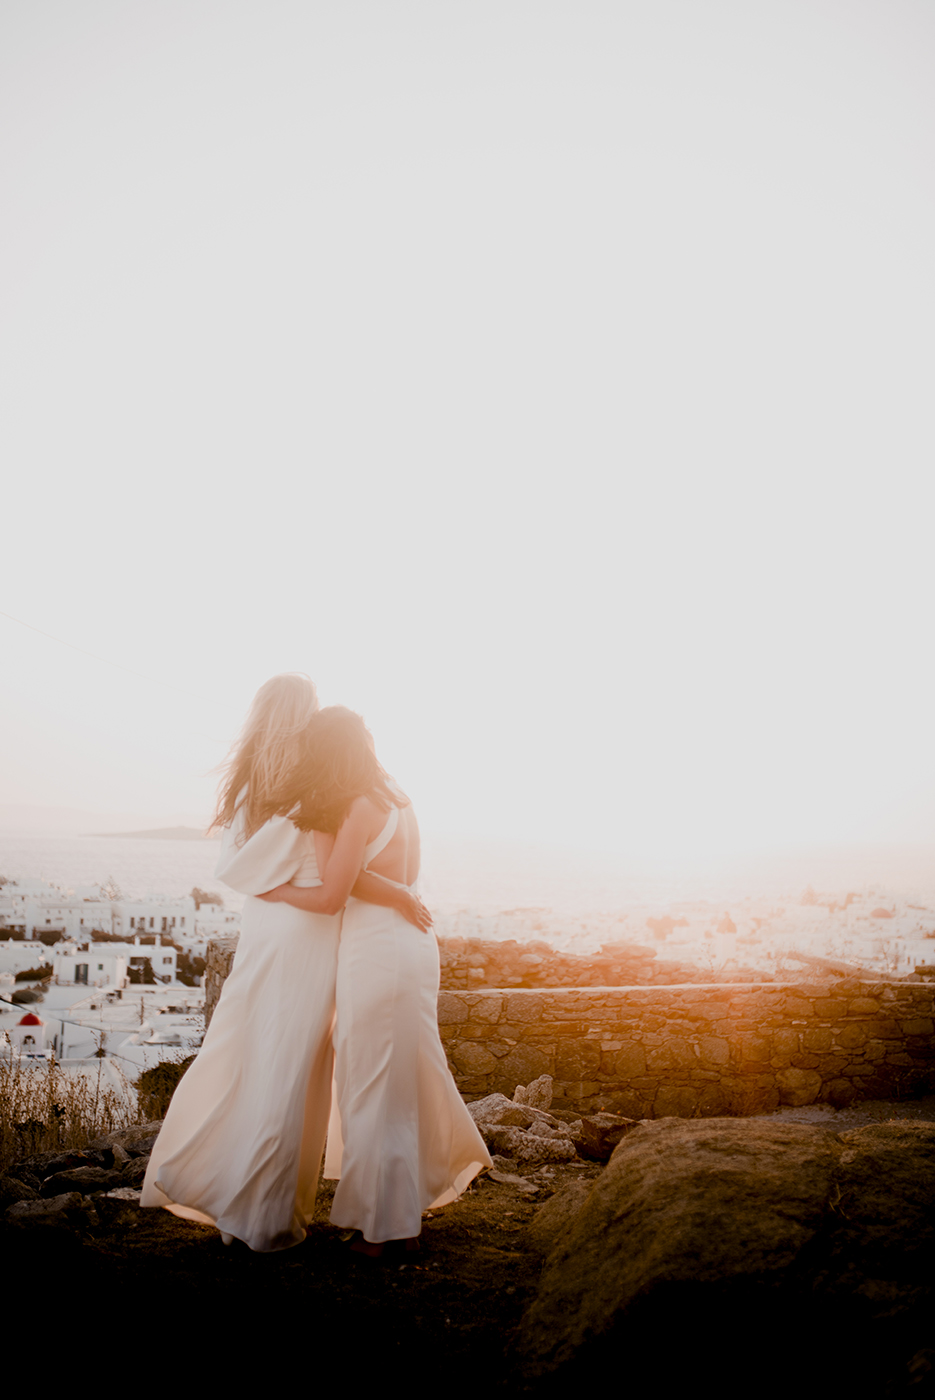 Kirill-Samarits-Wedding-Photography-Greece-AThens-Mykonos-Santorini-Same-Sex-Wedding-Photographer-Candice-Mykonos (13)